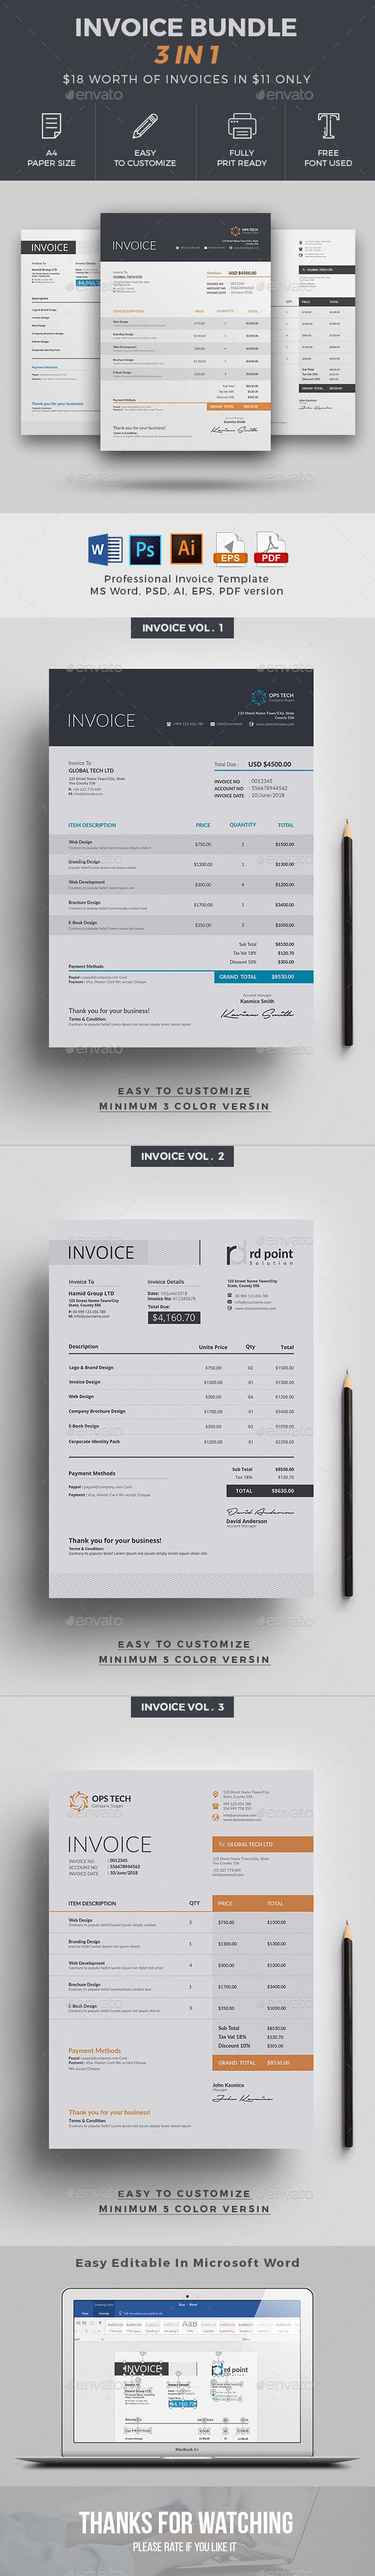 1000 ideas about invoice template on pinterest invoice for Https invoice generator com 1